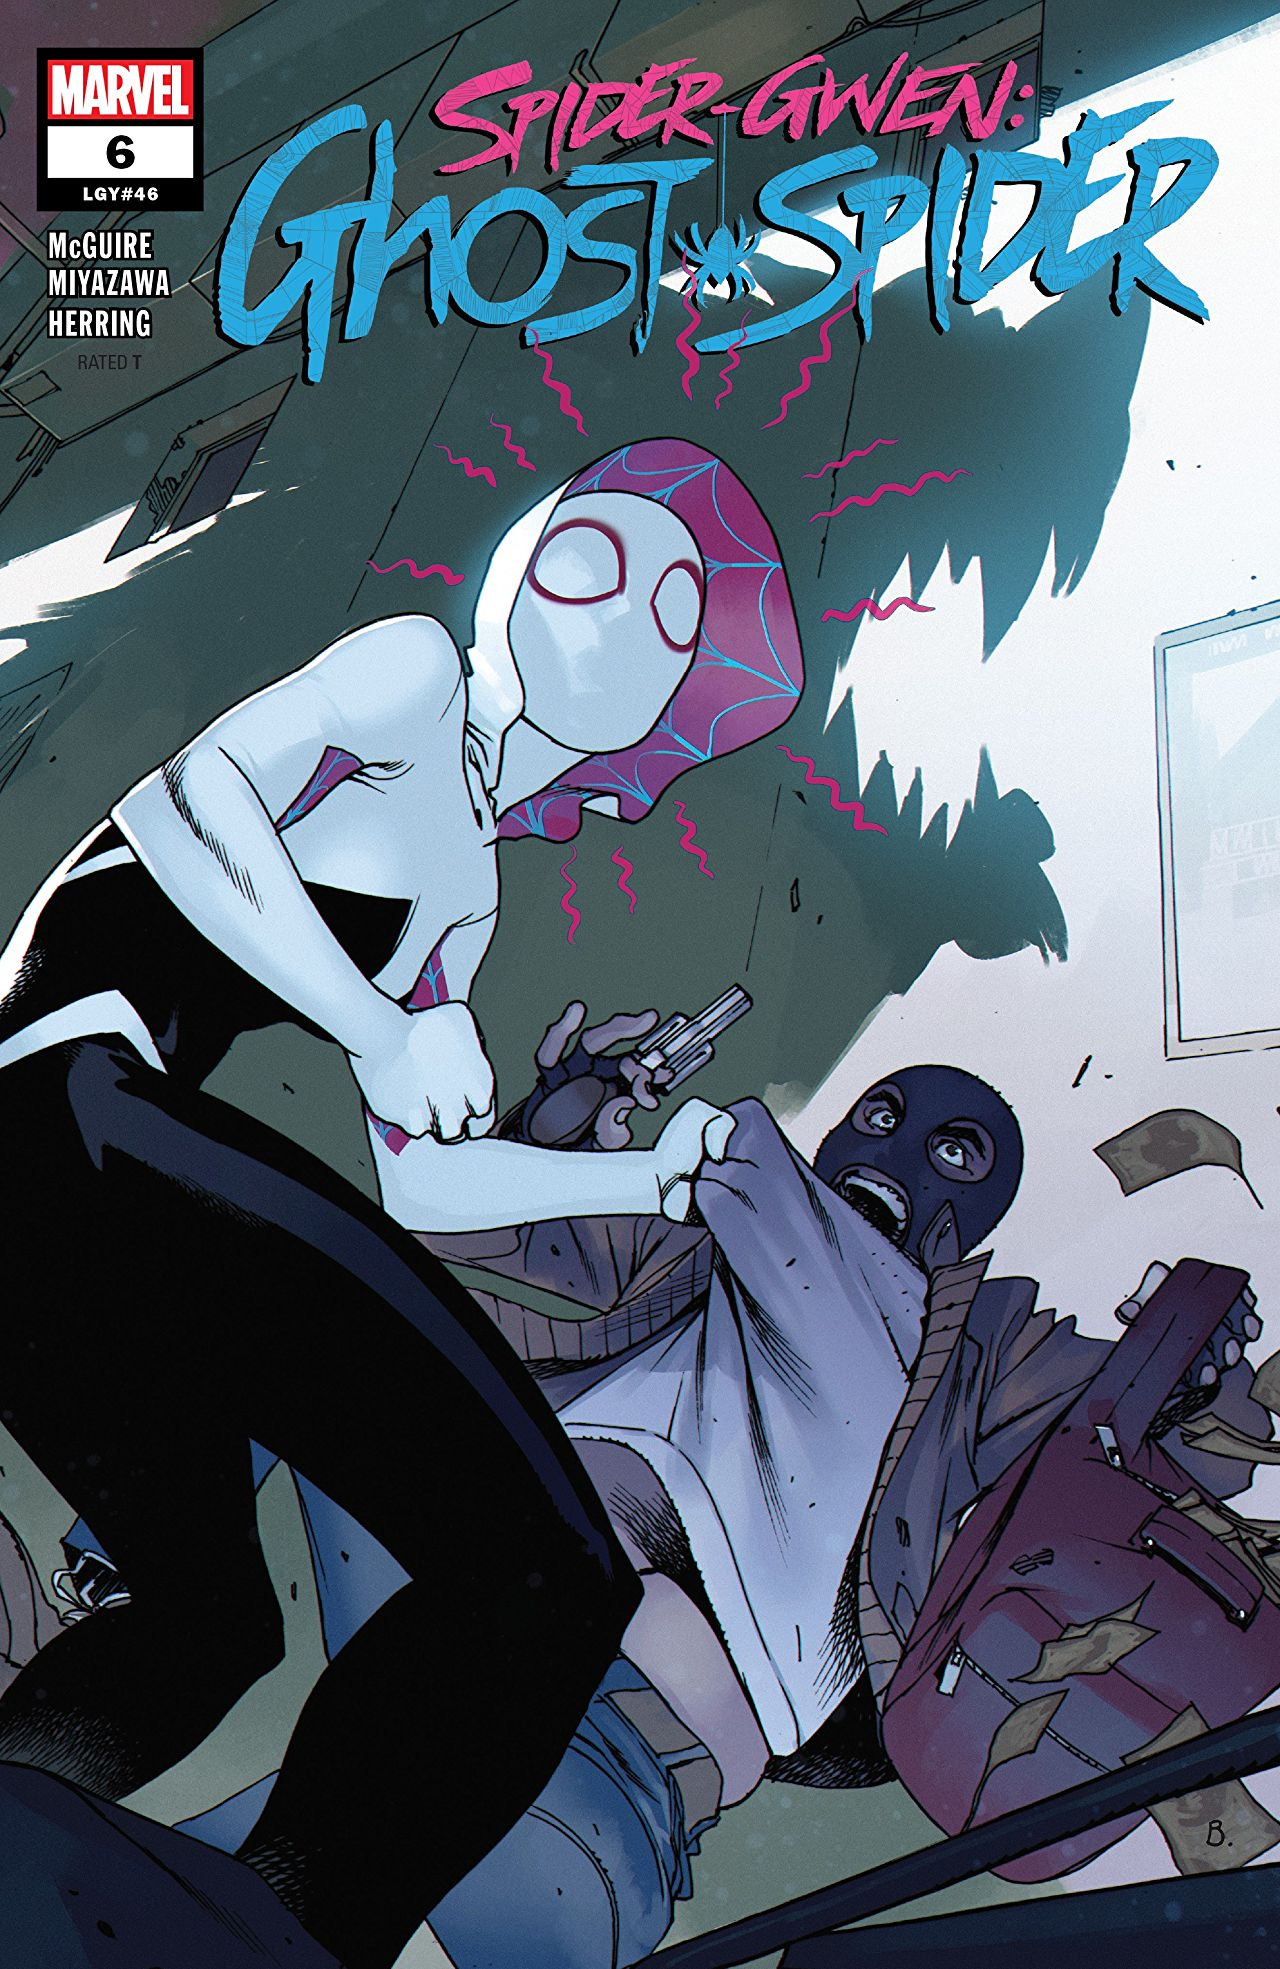 Spider-Gwen: Ghost-Spider #6 cover by Bengal